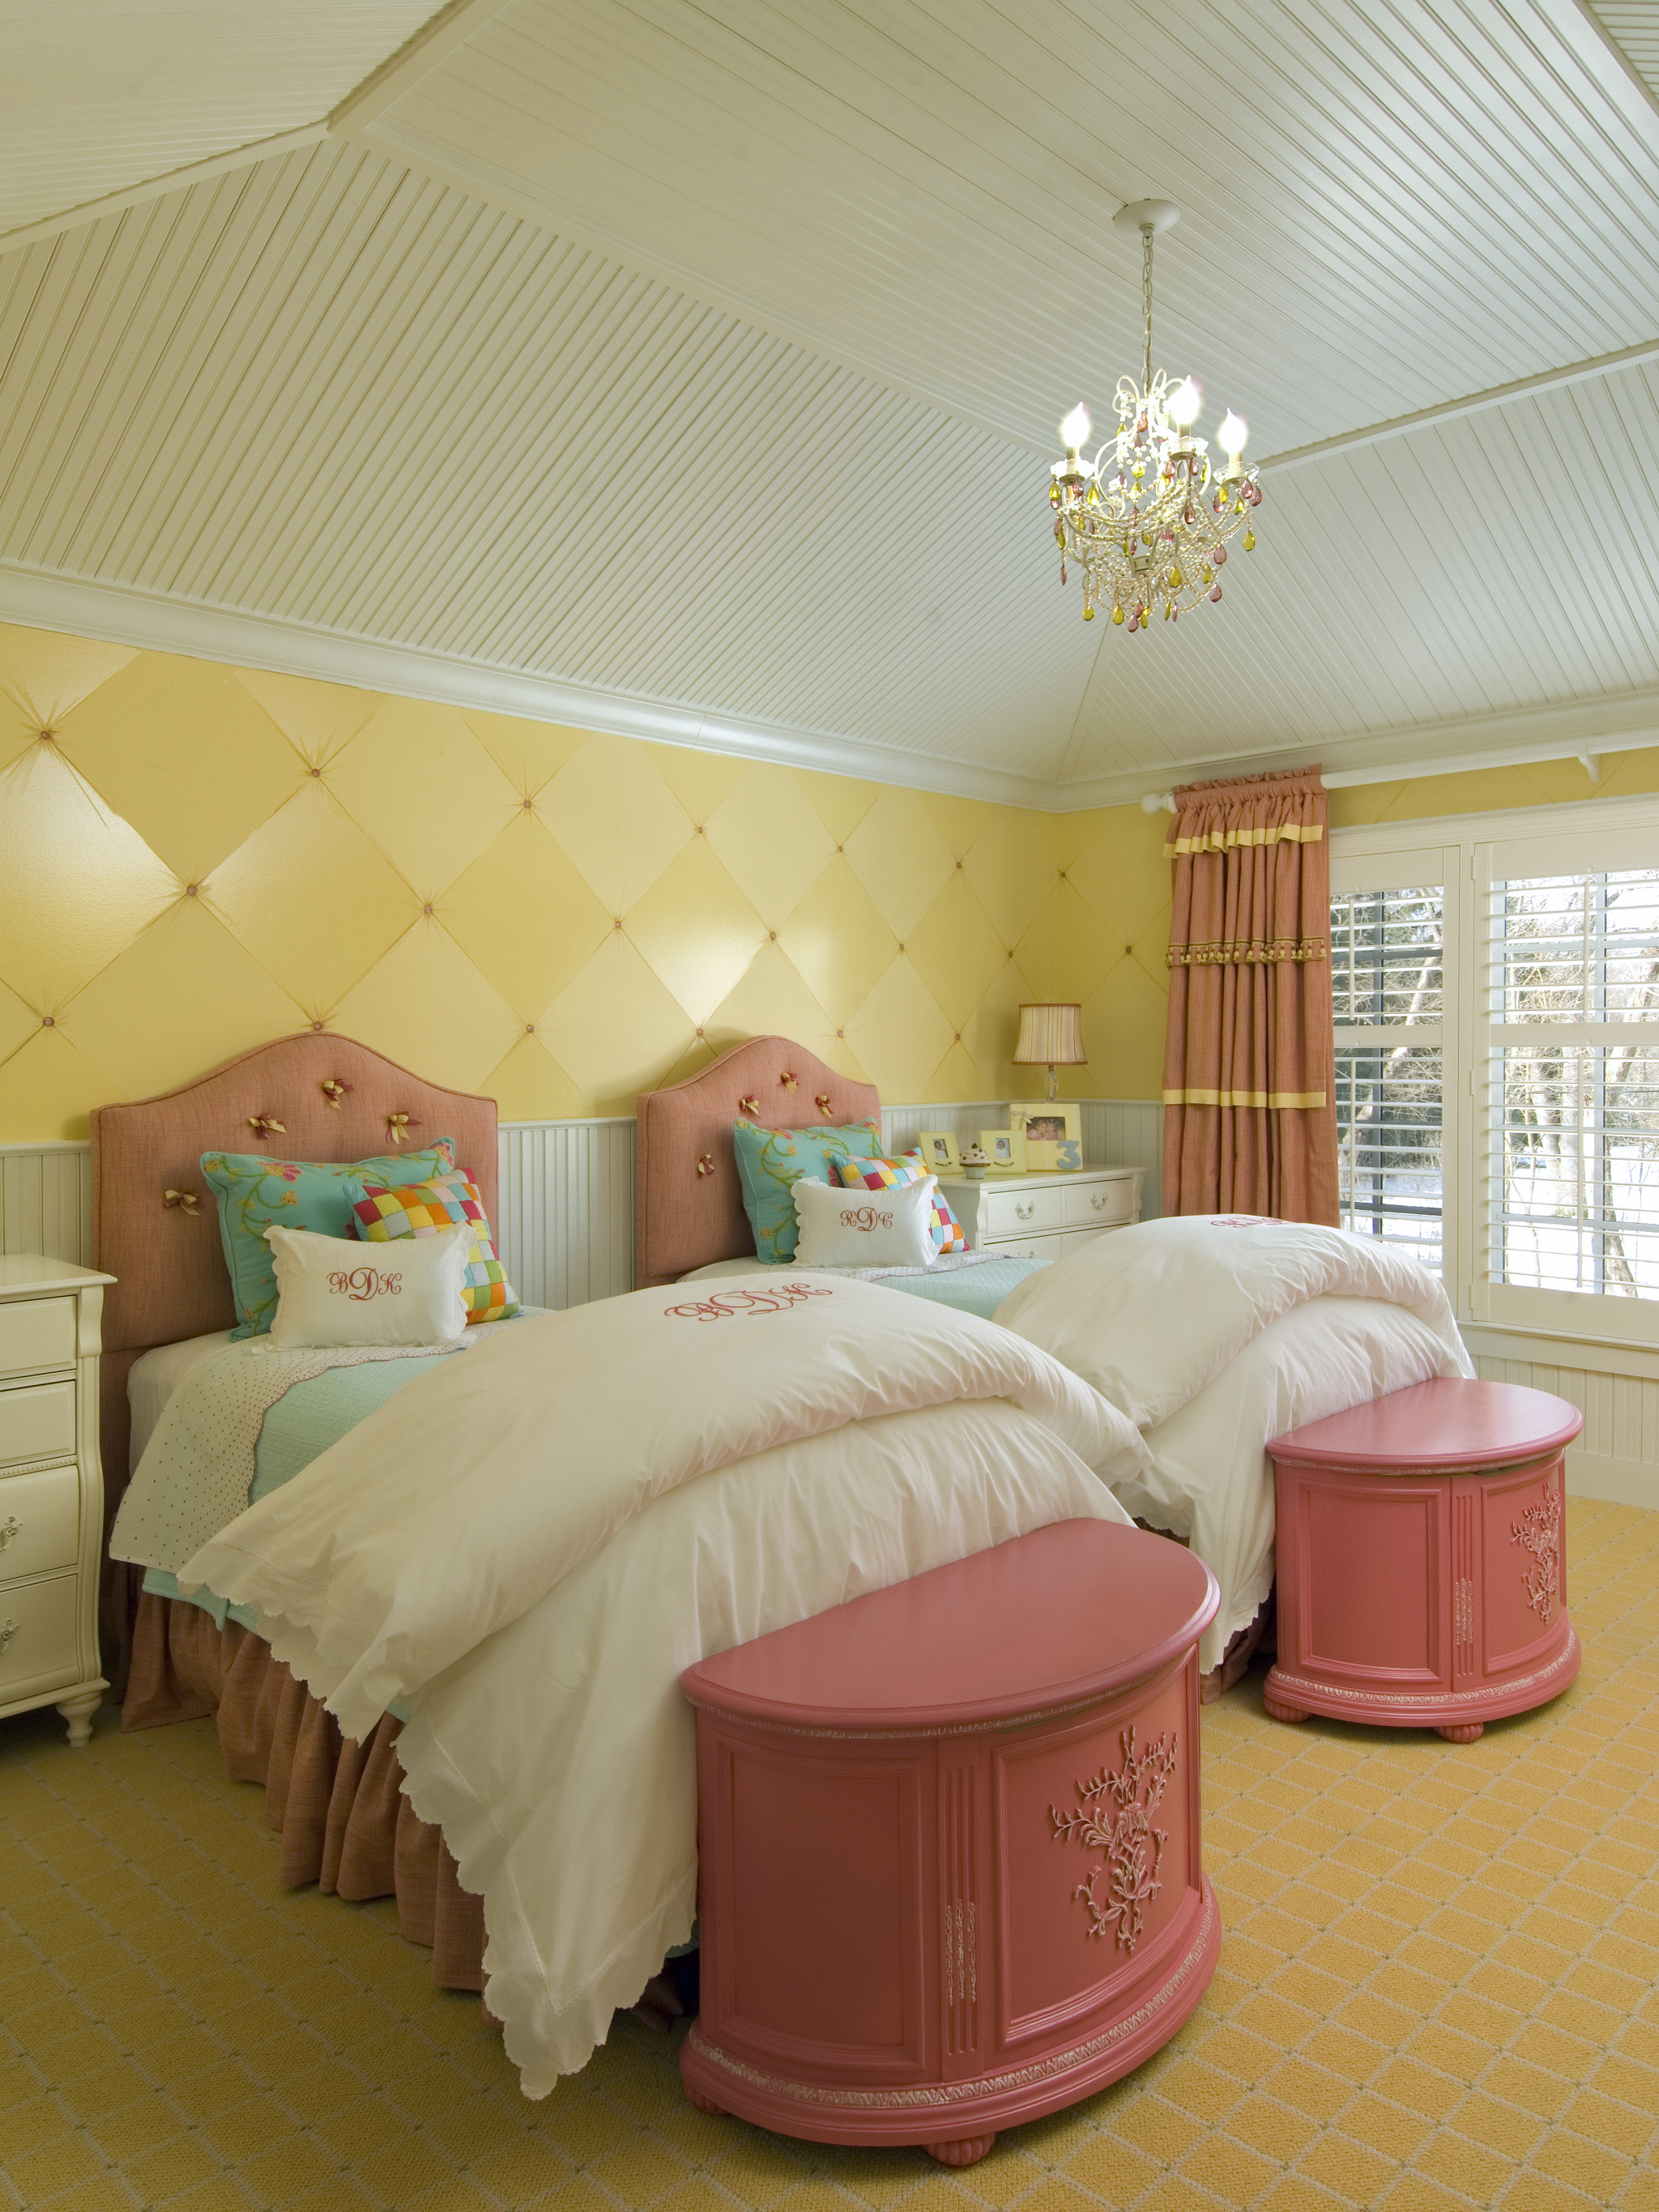 Cozy Traditional Twin Kids Bedroom With Yellow Wall Decor (View 12 of 35)